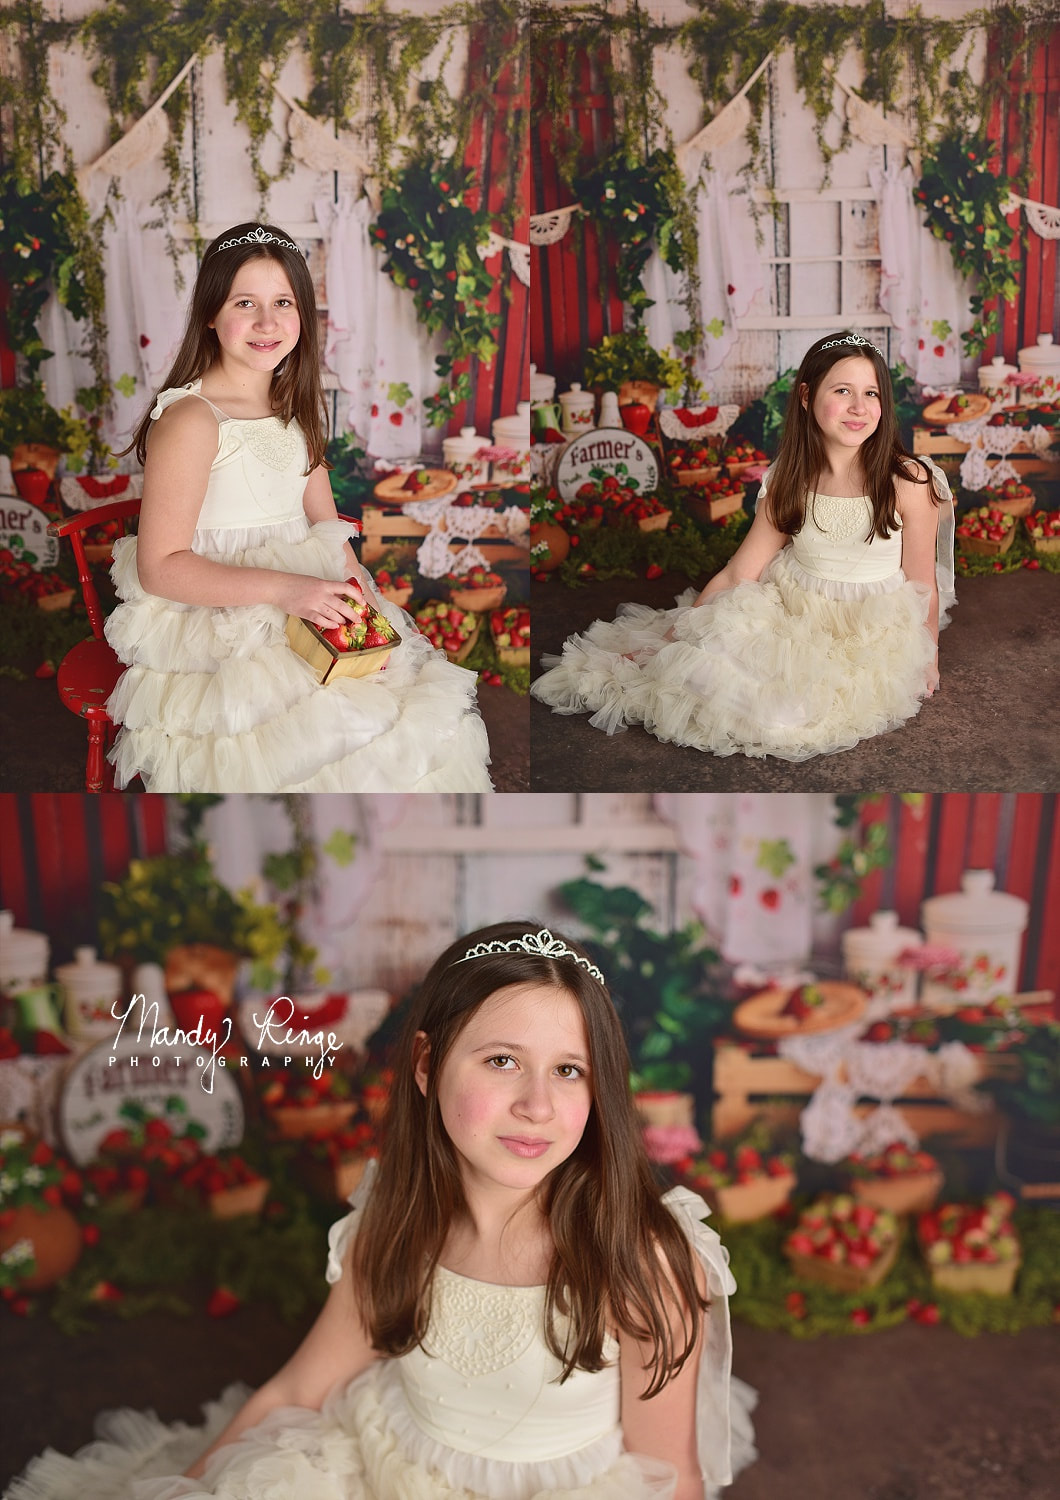 Sisters milestone portraits // strawberries, Dollcake dress, Baby Dream Backdrops // St Charles, IL Photographer // by Mandy Ringe Photography